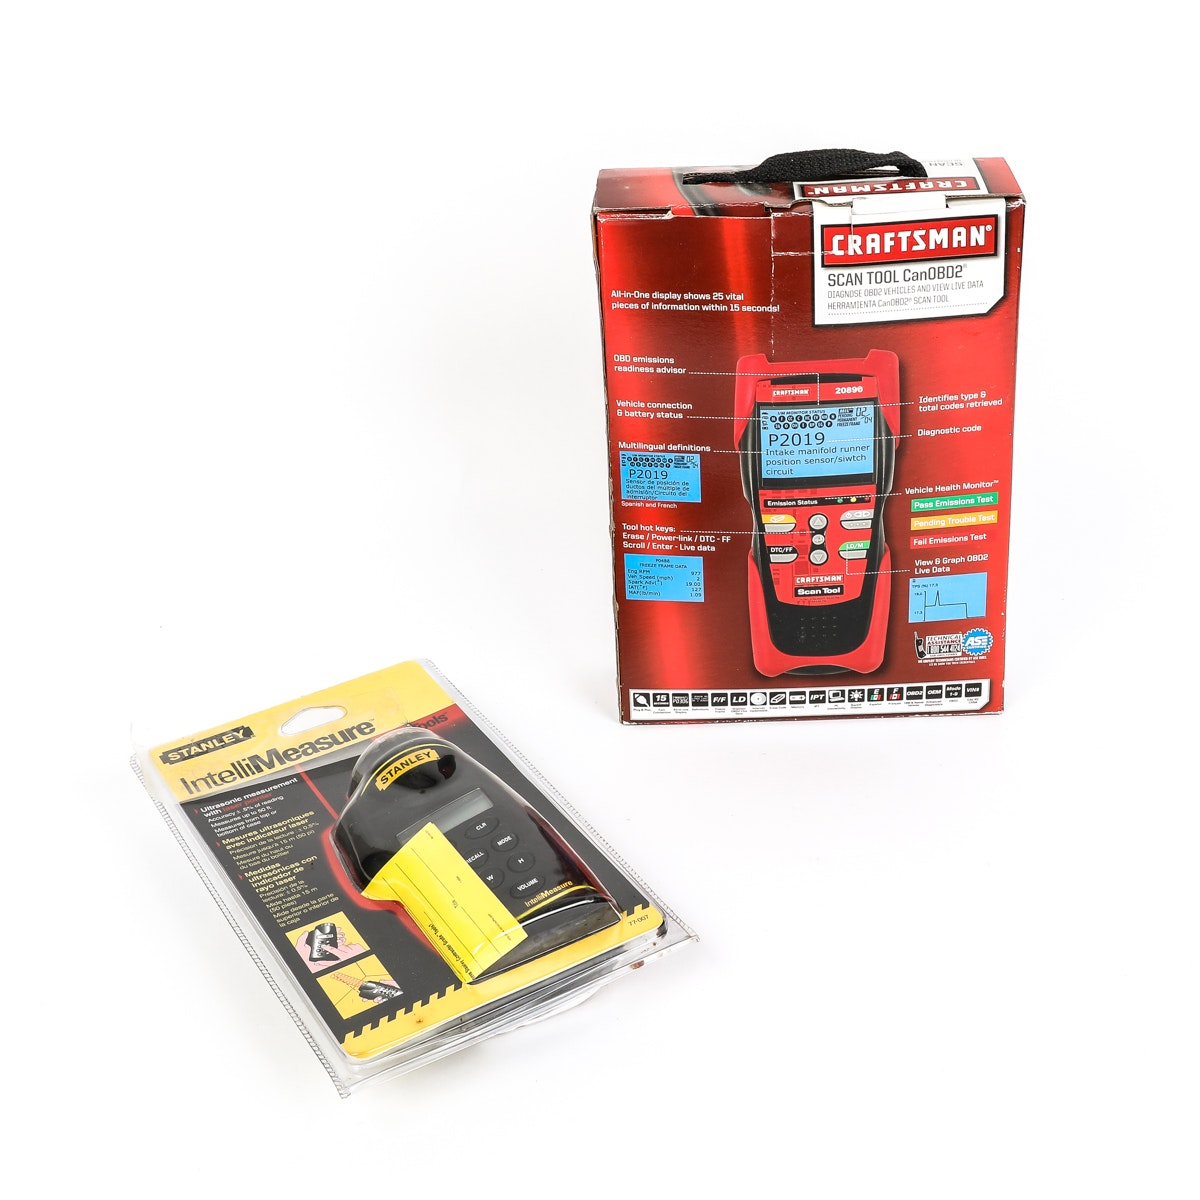 Craftsman Scan Tool and Stanley Ultrasonic Measurement Tool with Laser Pointer